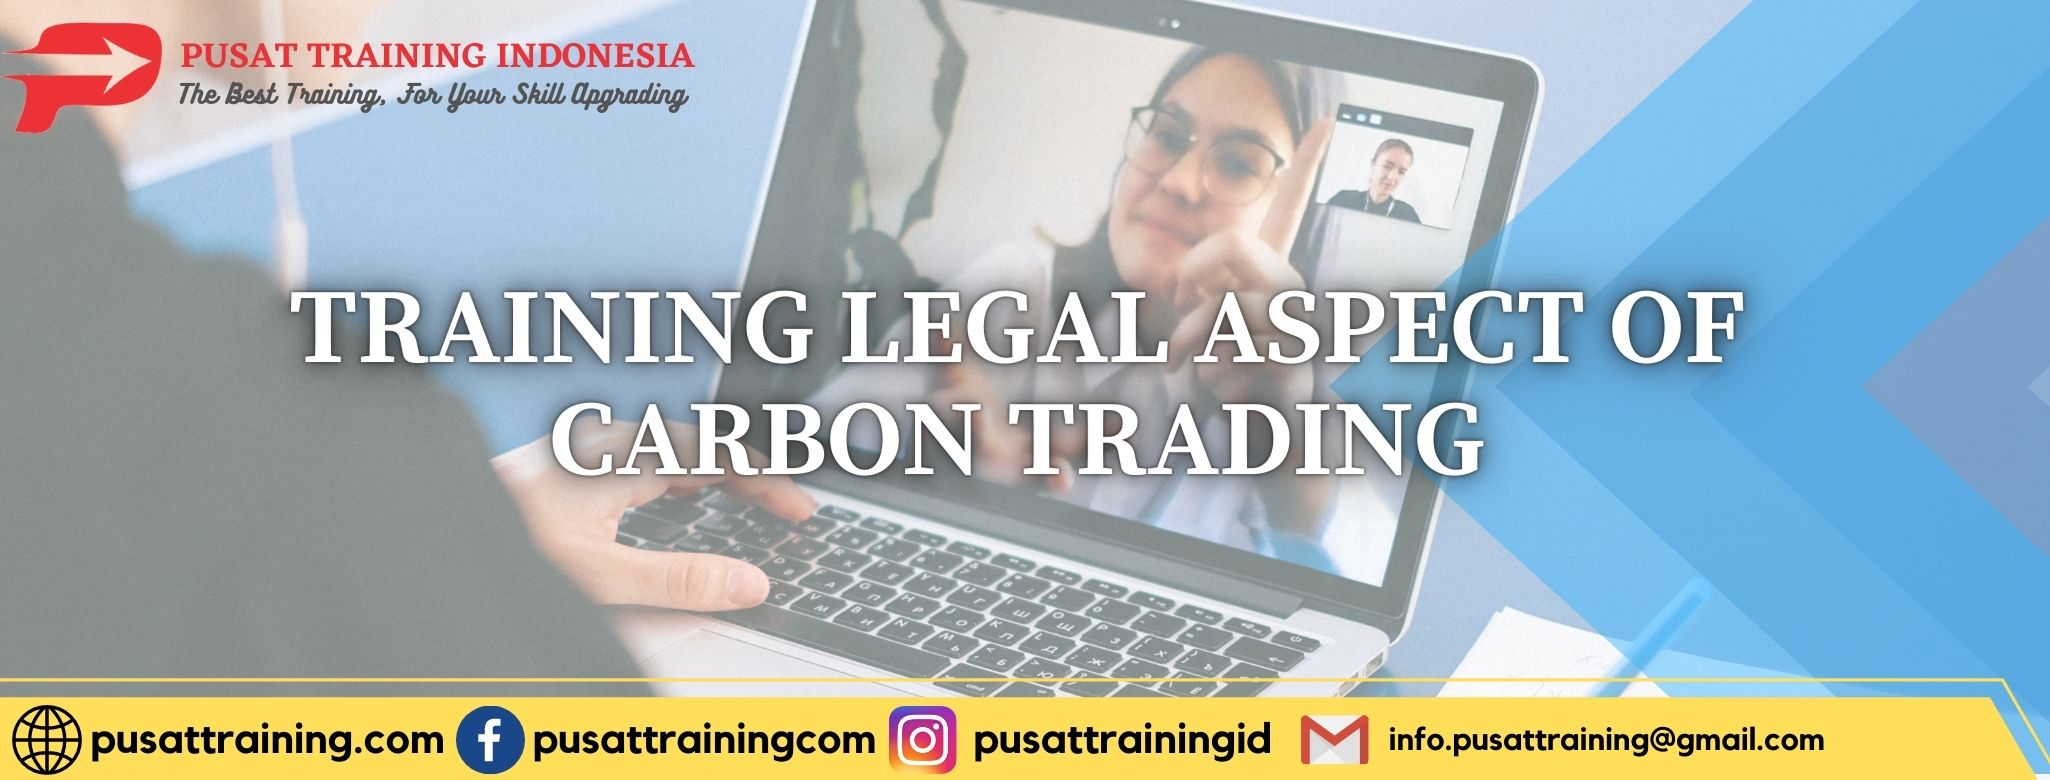 training-legal-aspect-of-carbon-trading